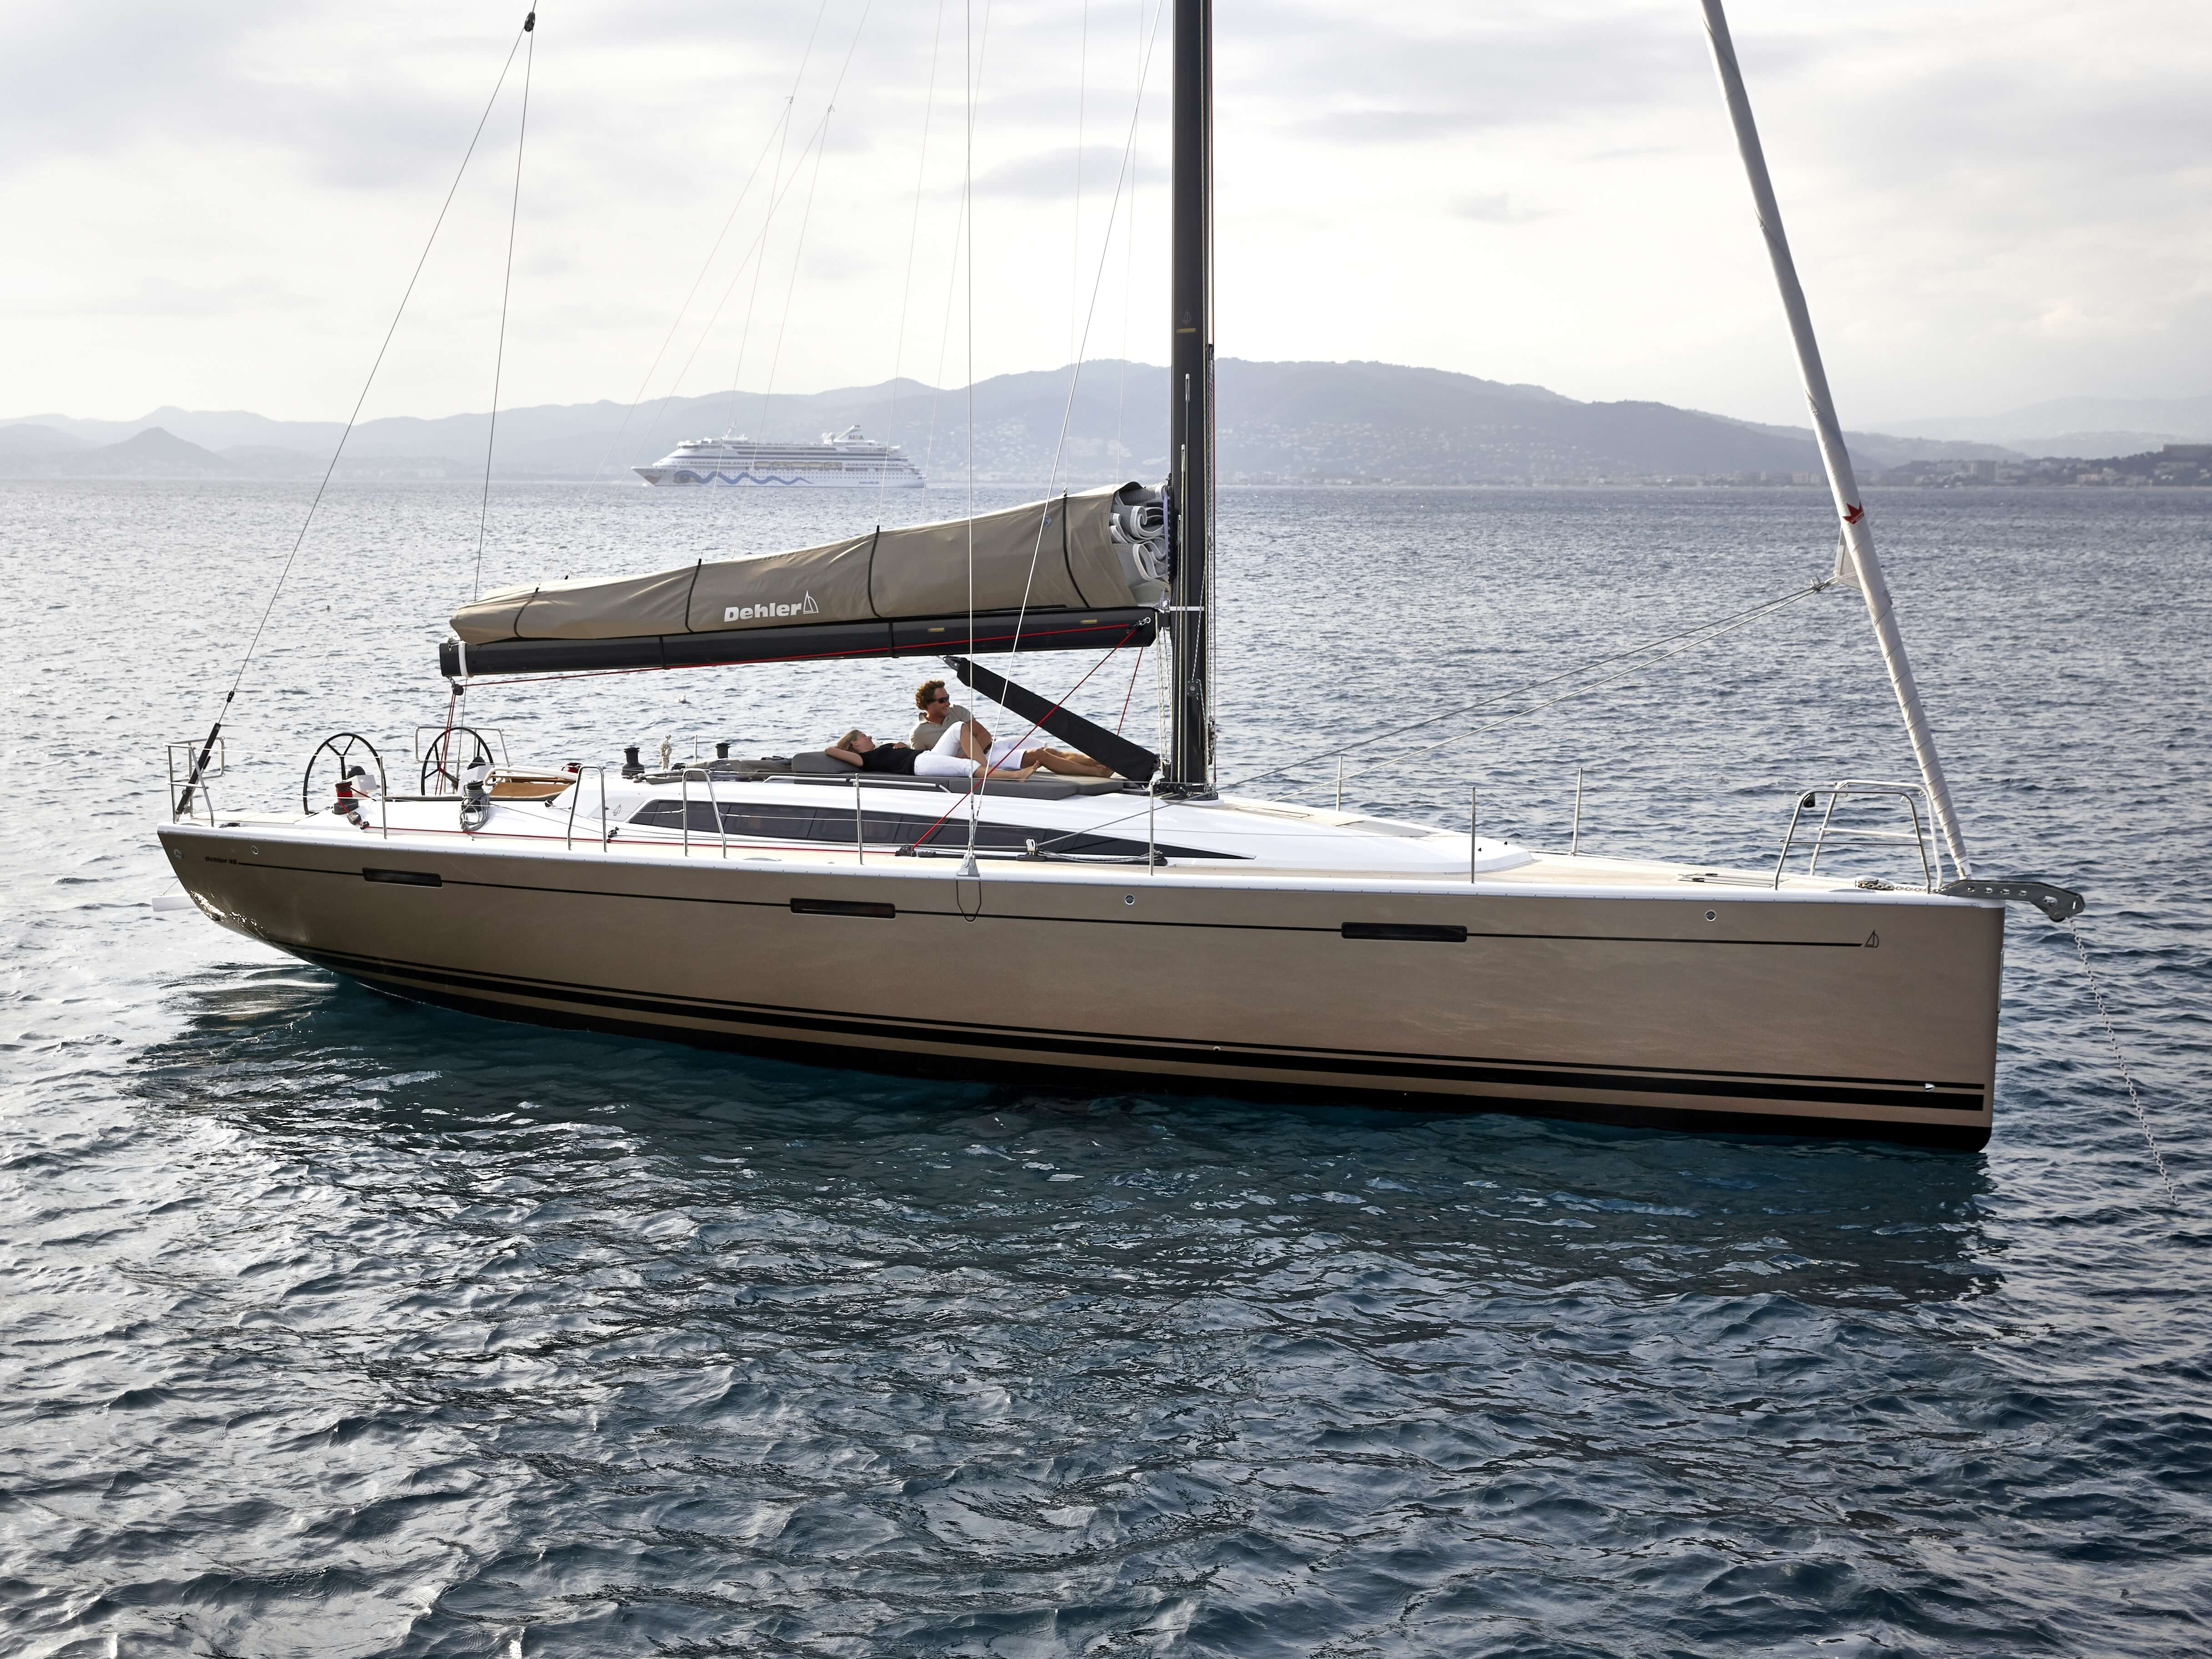 Dehler 46 Exterior at anchor | lazybag, hull | Dehler